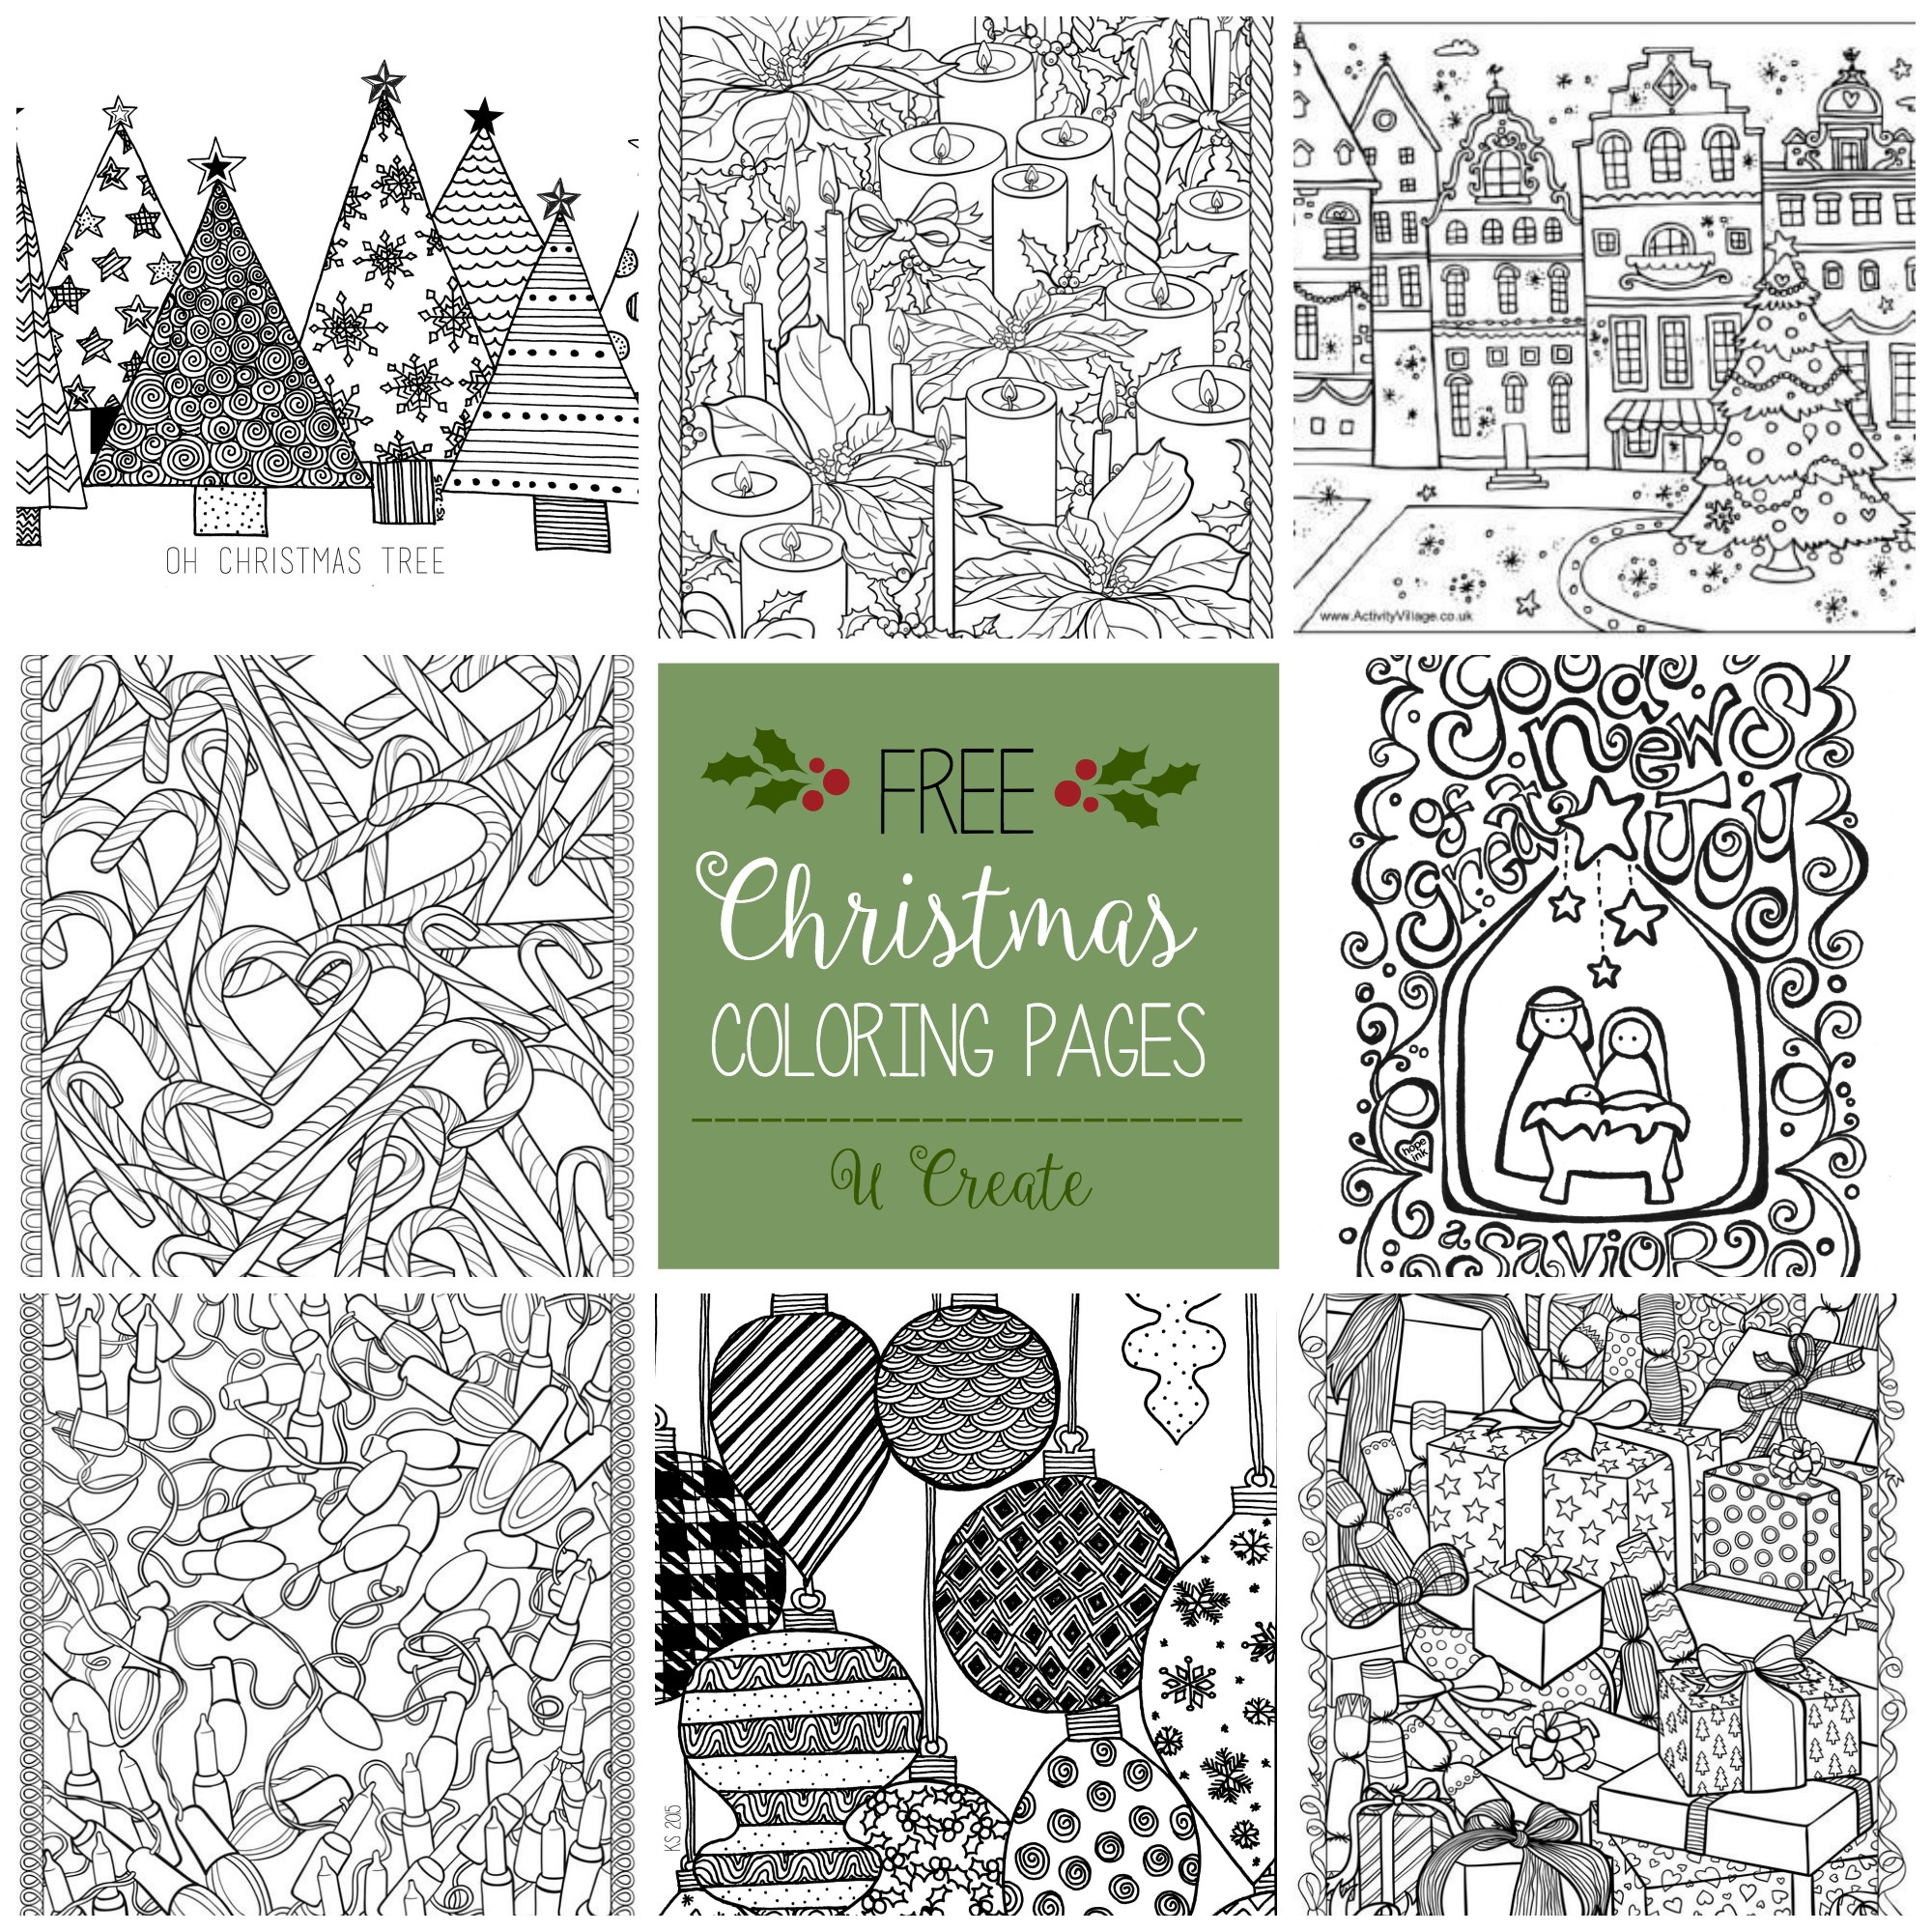 free christmas adult coloring pages u create - Free Printable Adult Coloring Pages 2